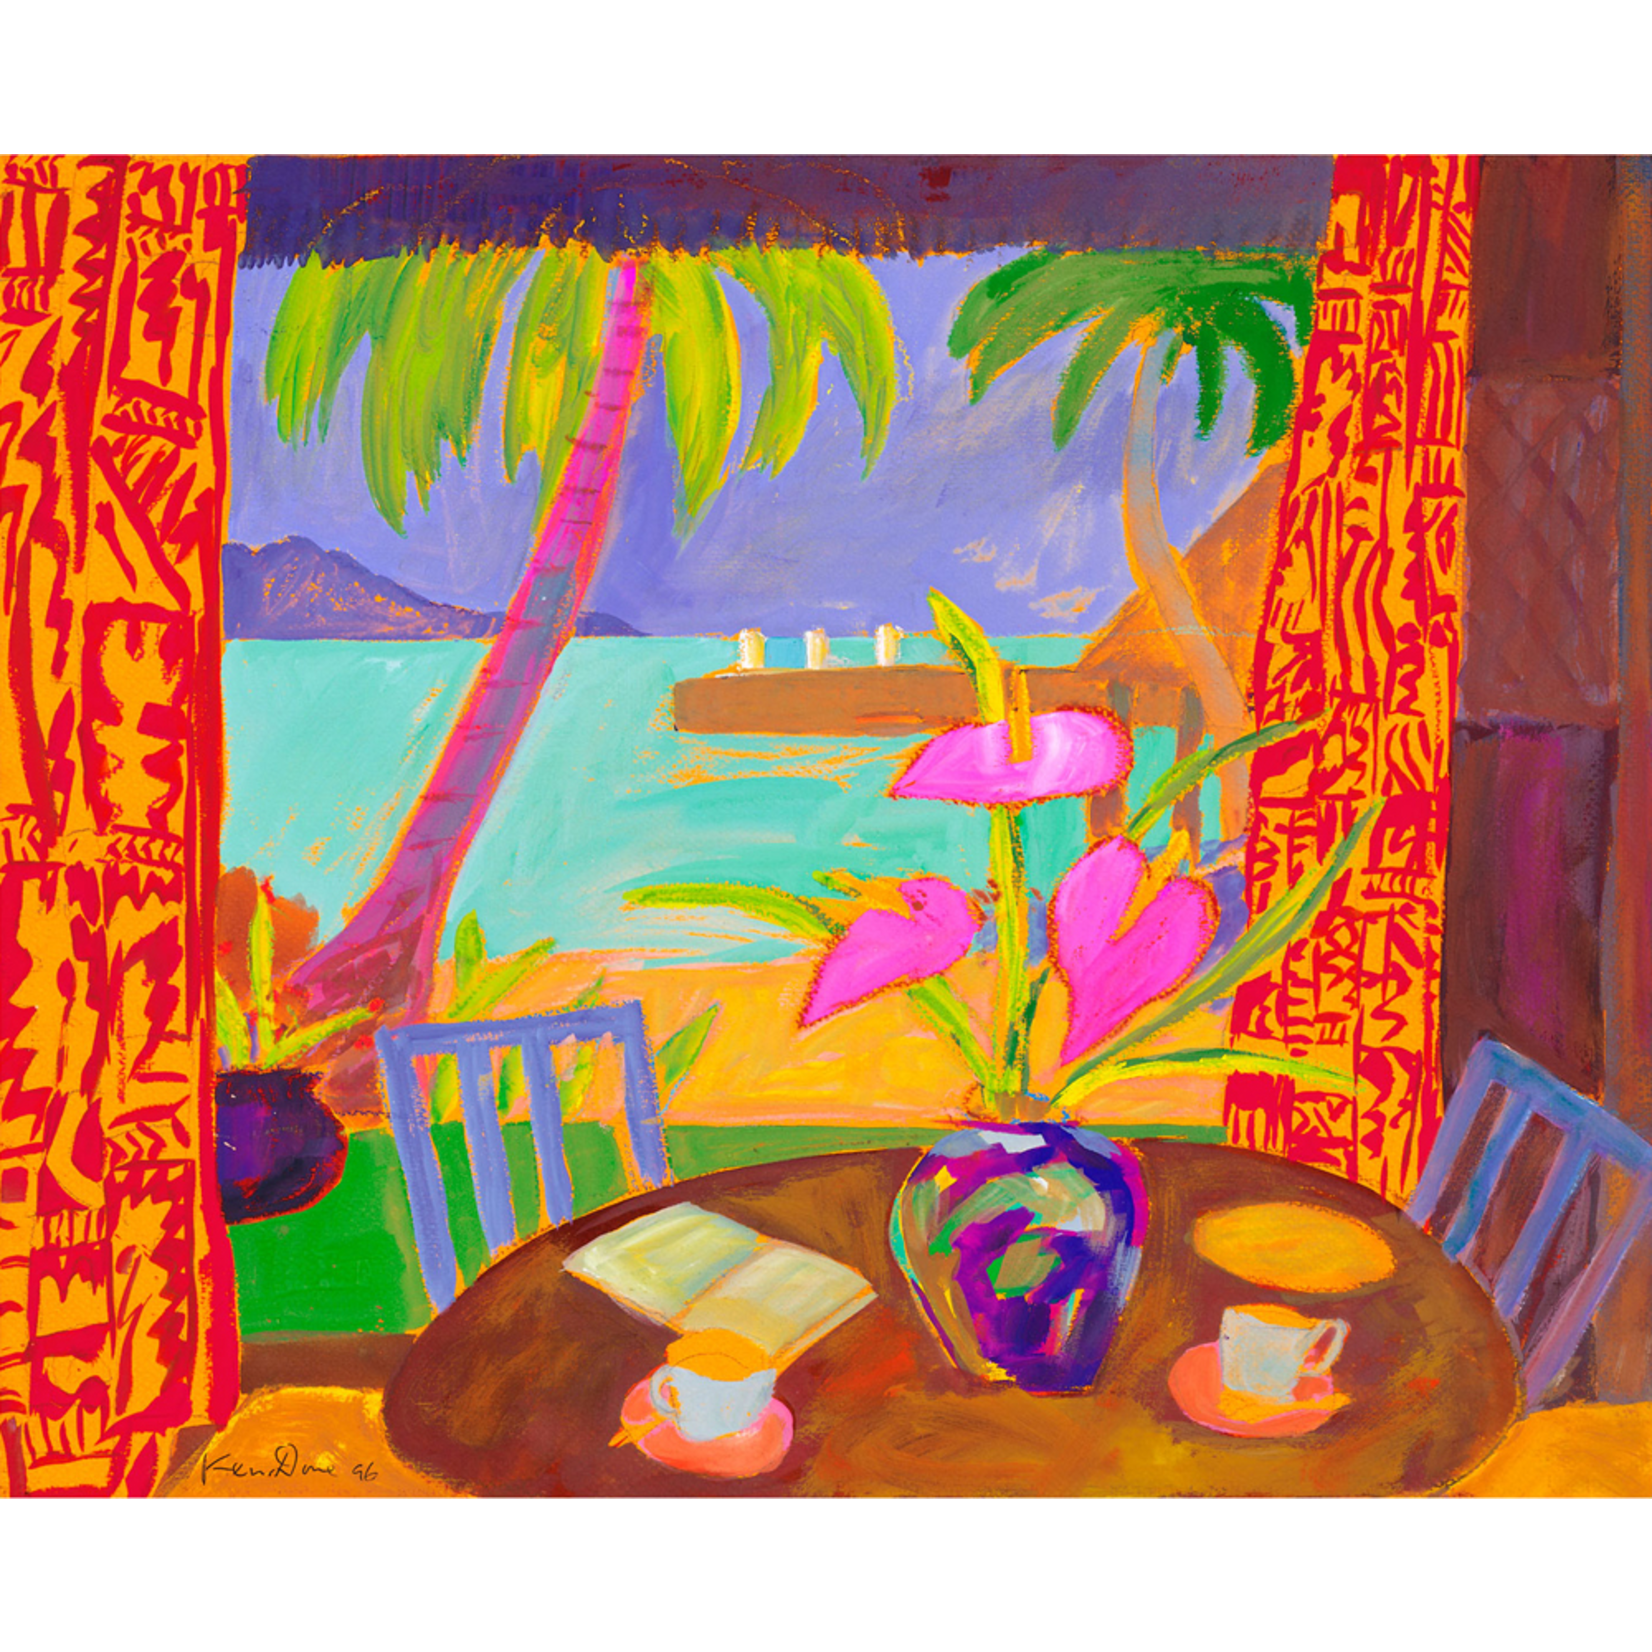 Limited Edition Prints From the dining room II Toberua, 1996